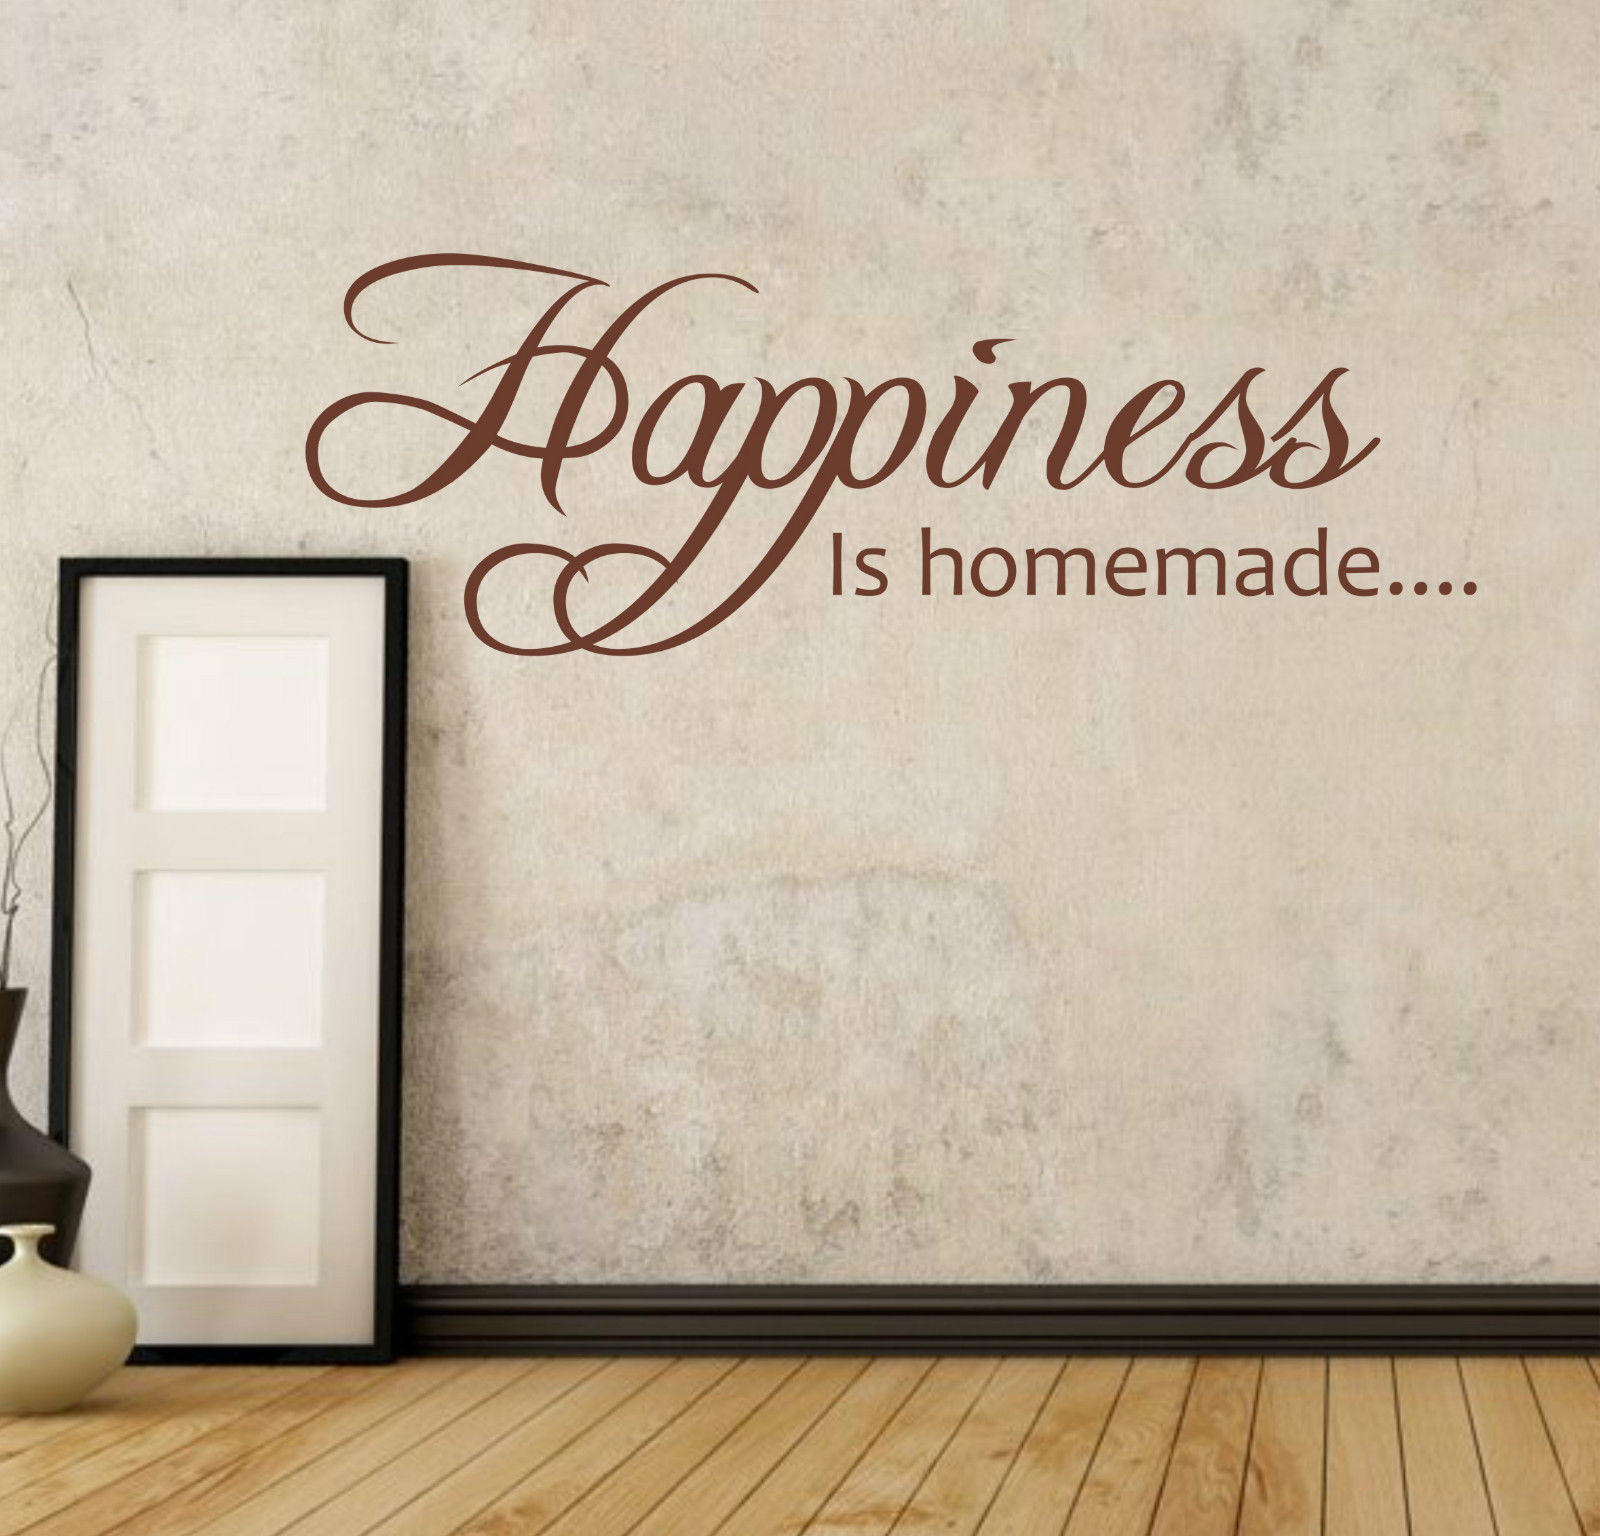 online get cheap homemade wall stickers aliexpress com alibaba happiness is homemade wall quote decal sticker kitchen free shipping